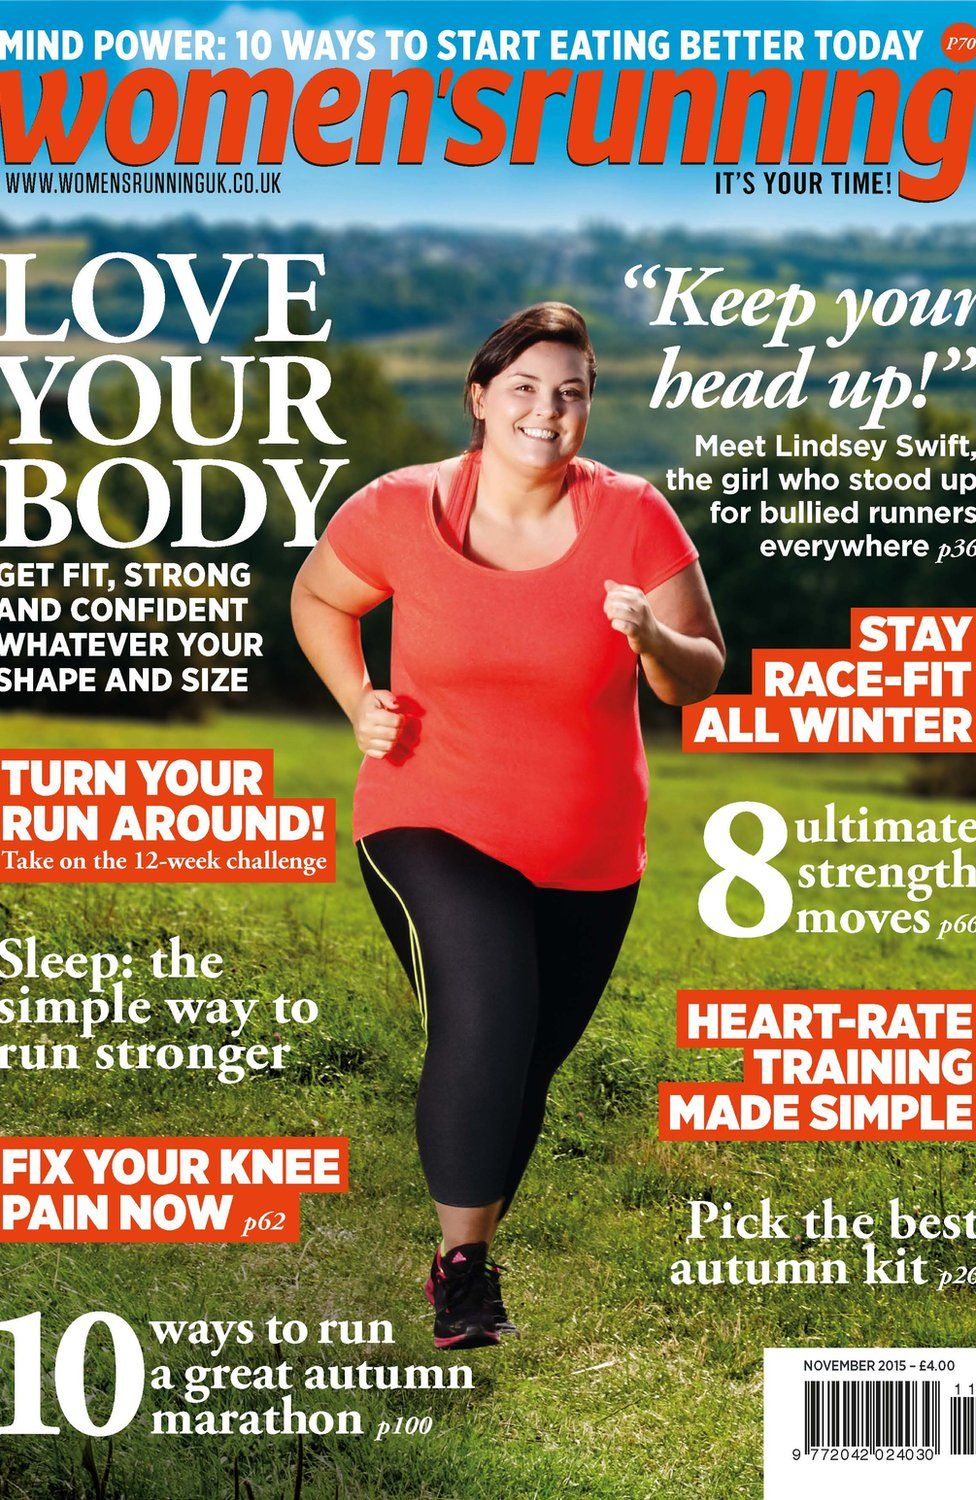 The cover of Women's Running featuring Lindsey Swift